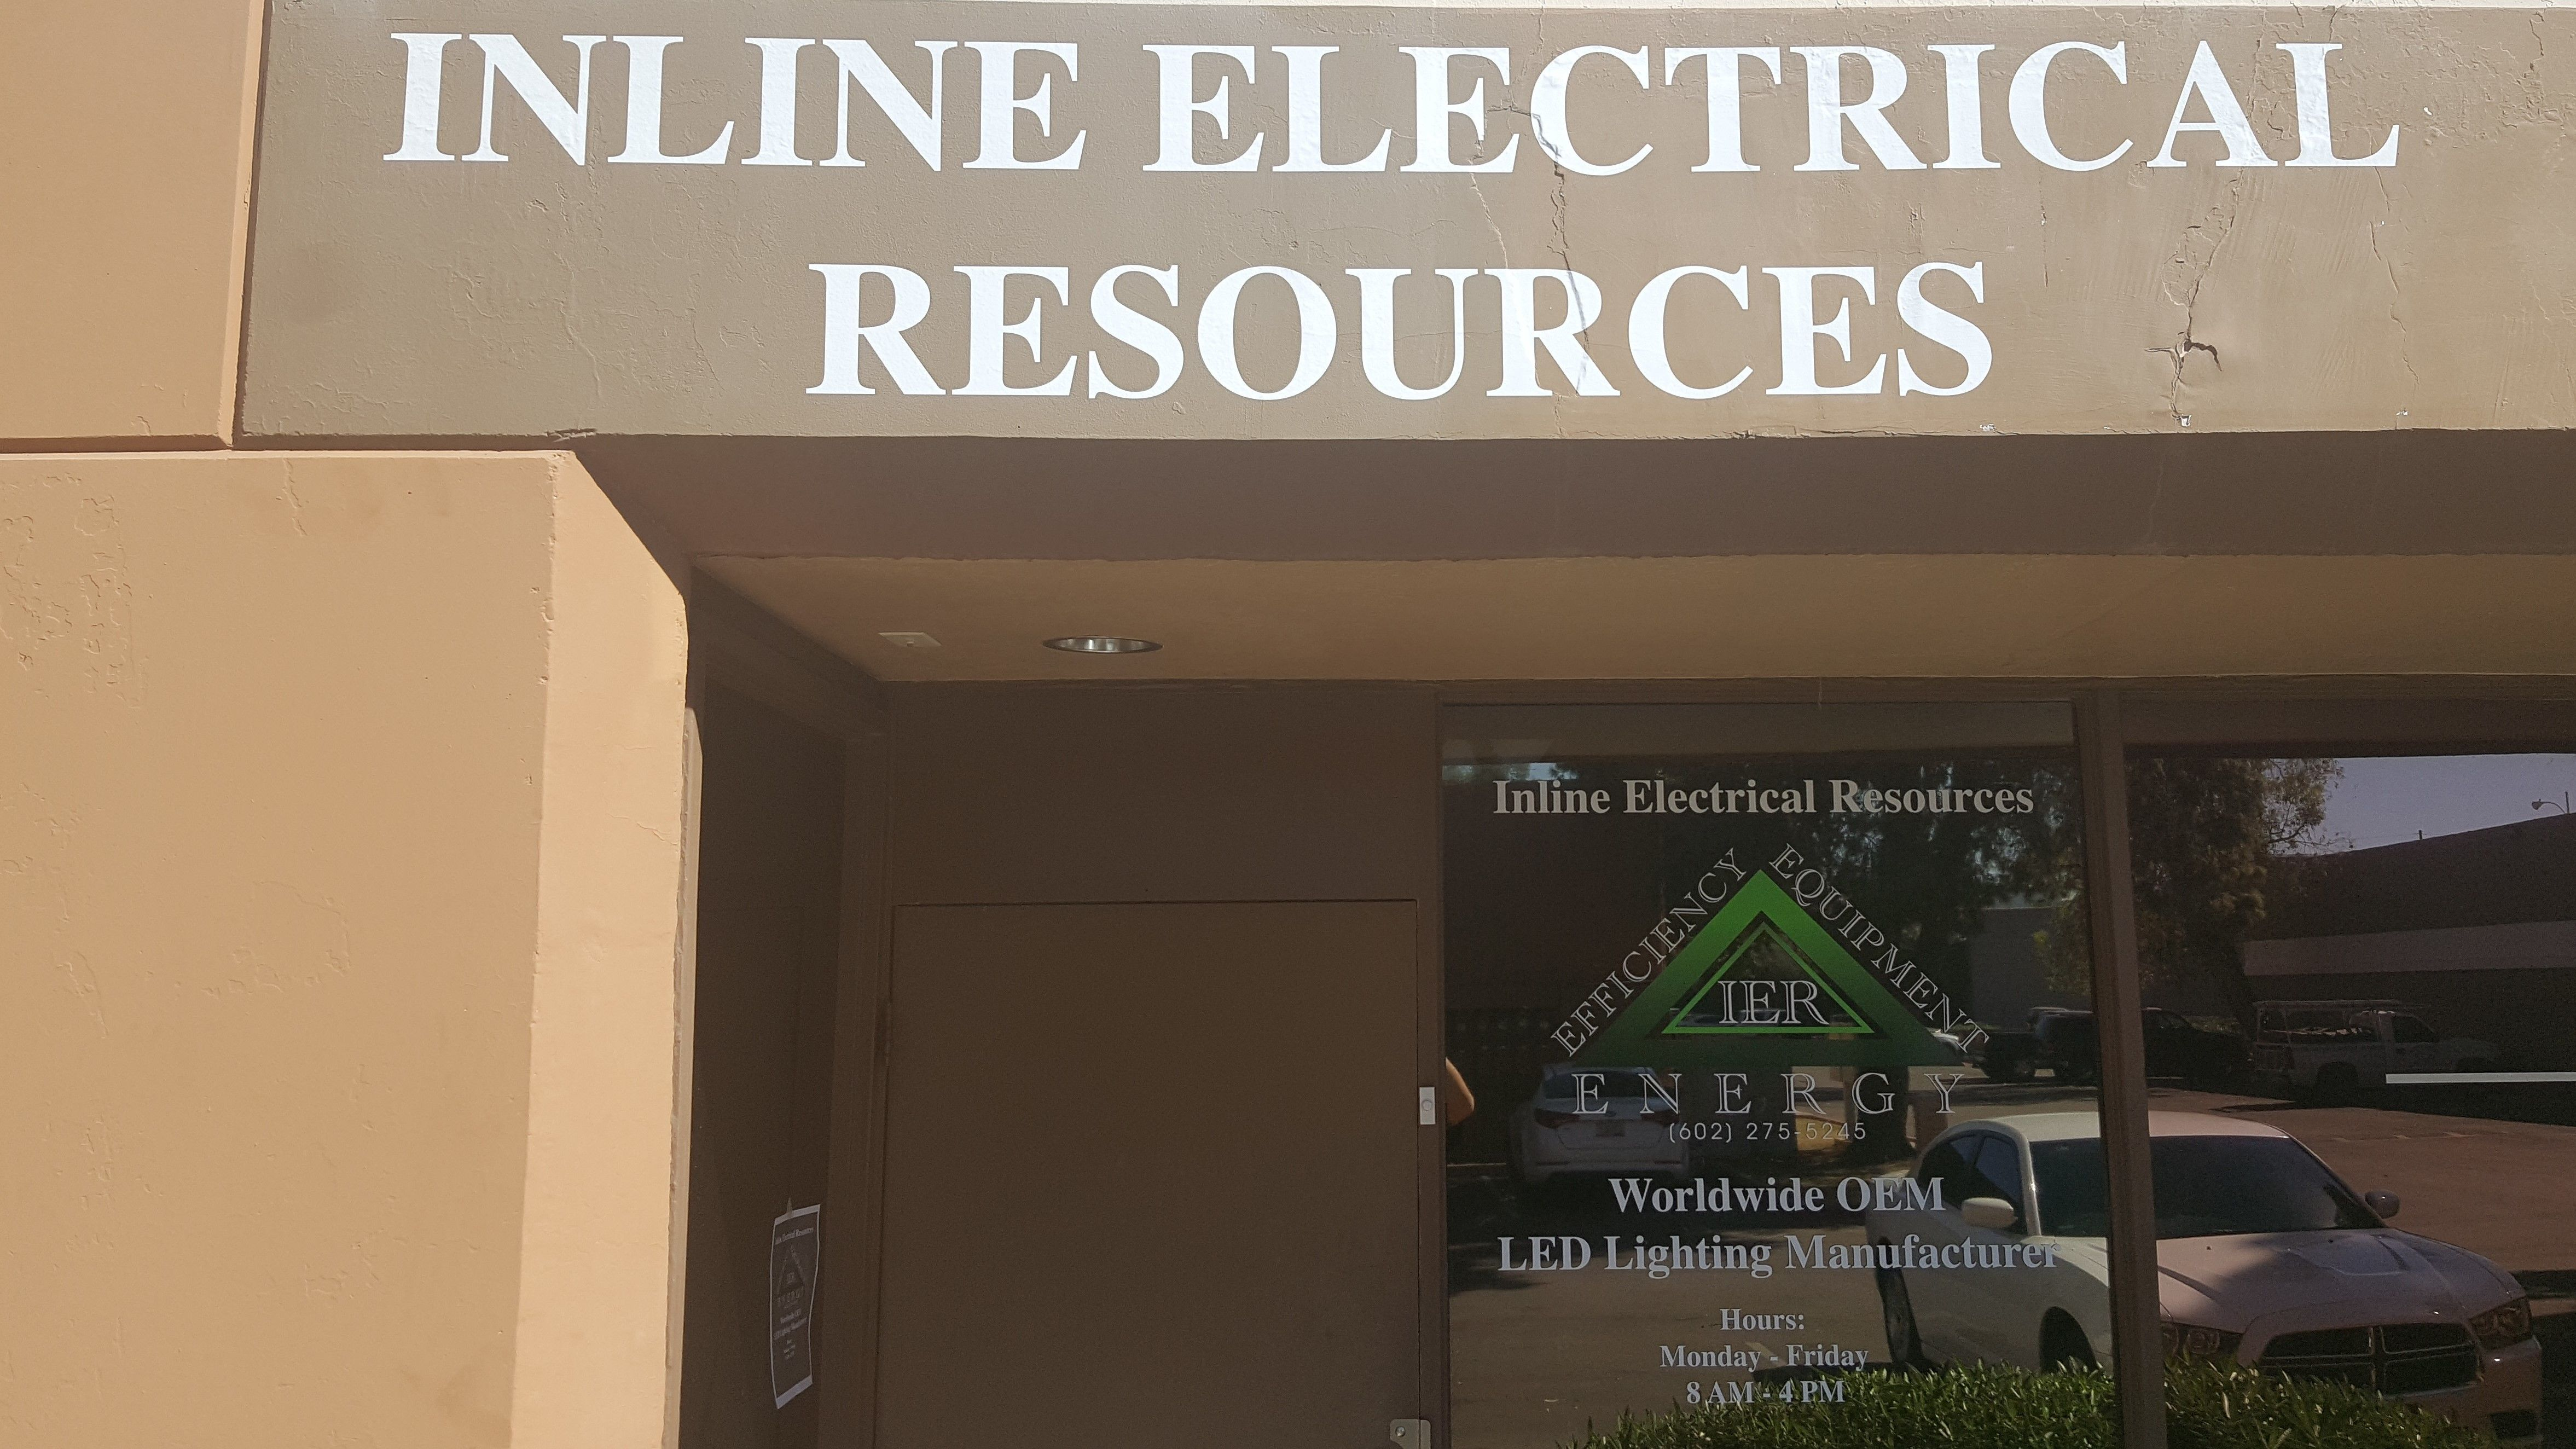 Inline Electrical Resources In Tempe Az 85282